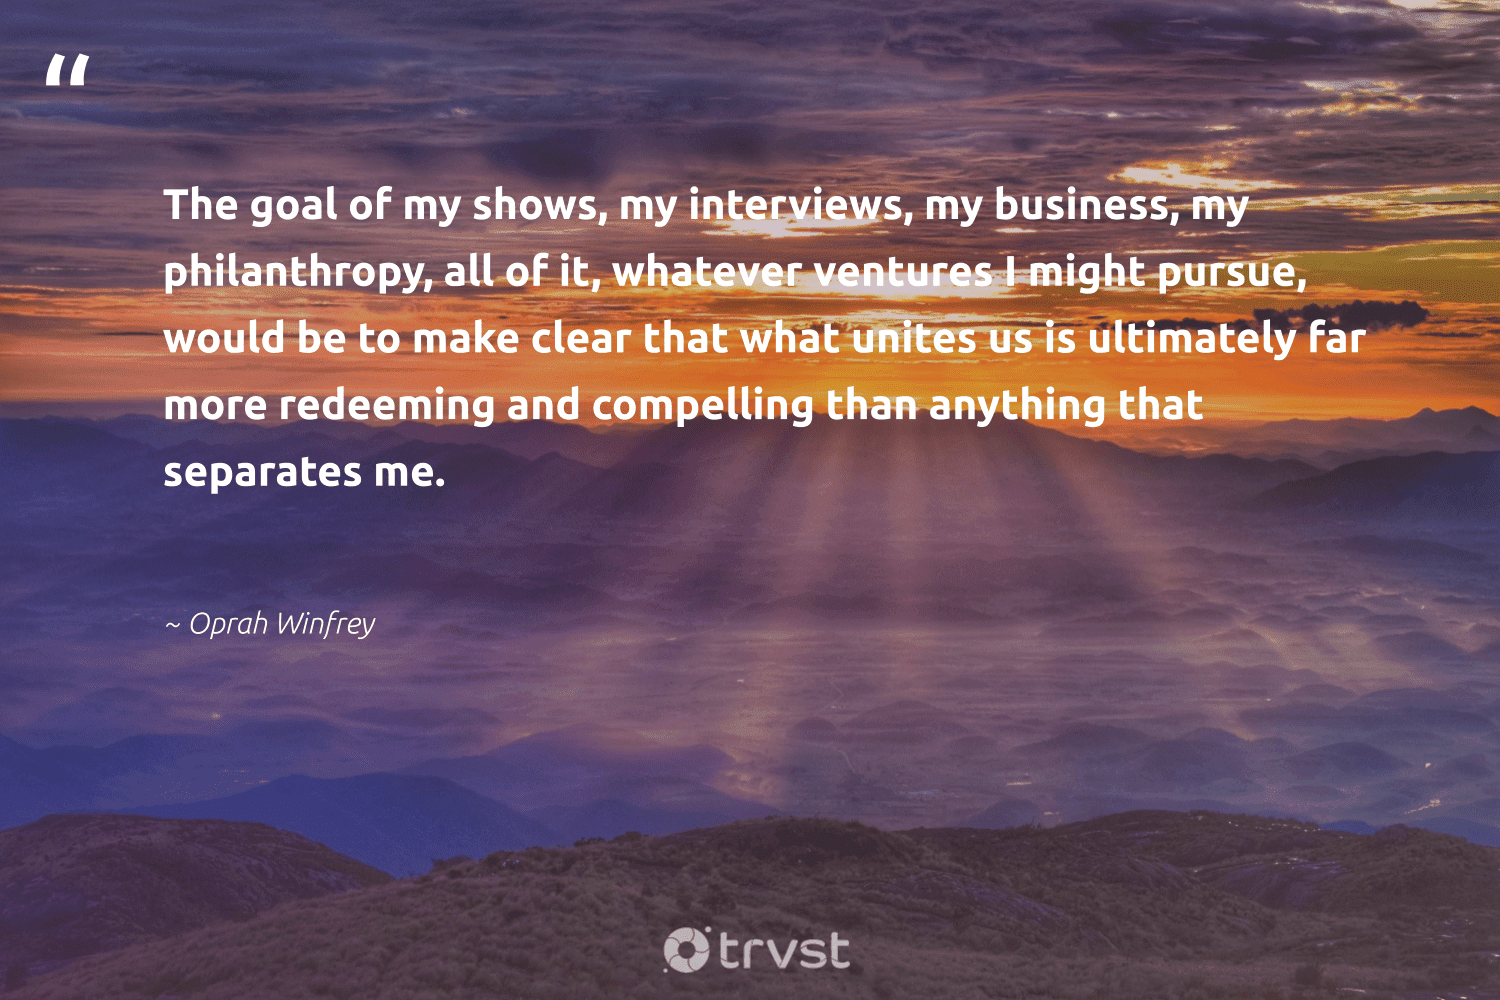 """""""The goal of my shows, my interviews, my business, my philanthropy, all of it, whatever ventures I might pursue, would be to make clear that what unites us is ultimately far more redeeming and compelling than anything that separates me.""""  - Oprah Winfrey #trvst #quotes #philanthropy #philanthropic #changemakers #togetherwecan #thinkgreen #giveforthefuture #itscooltobekind #bethechange #socialchange #dogood"""